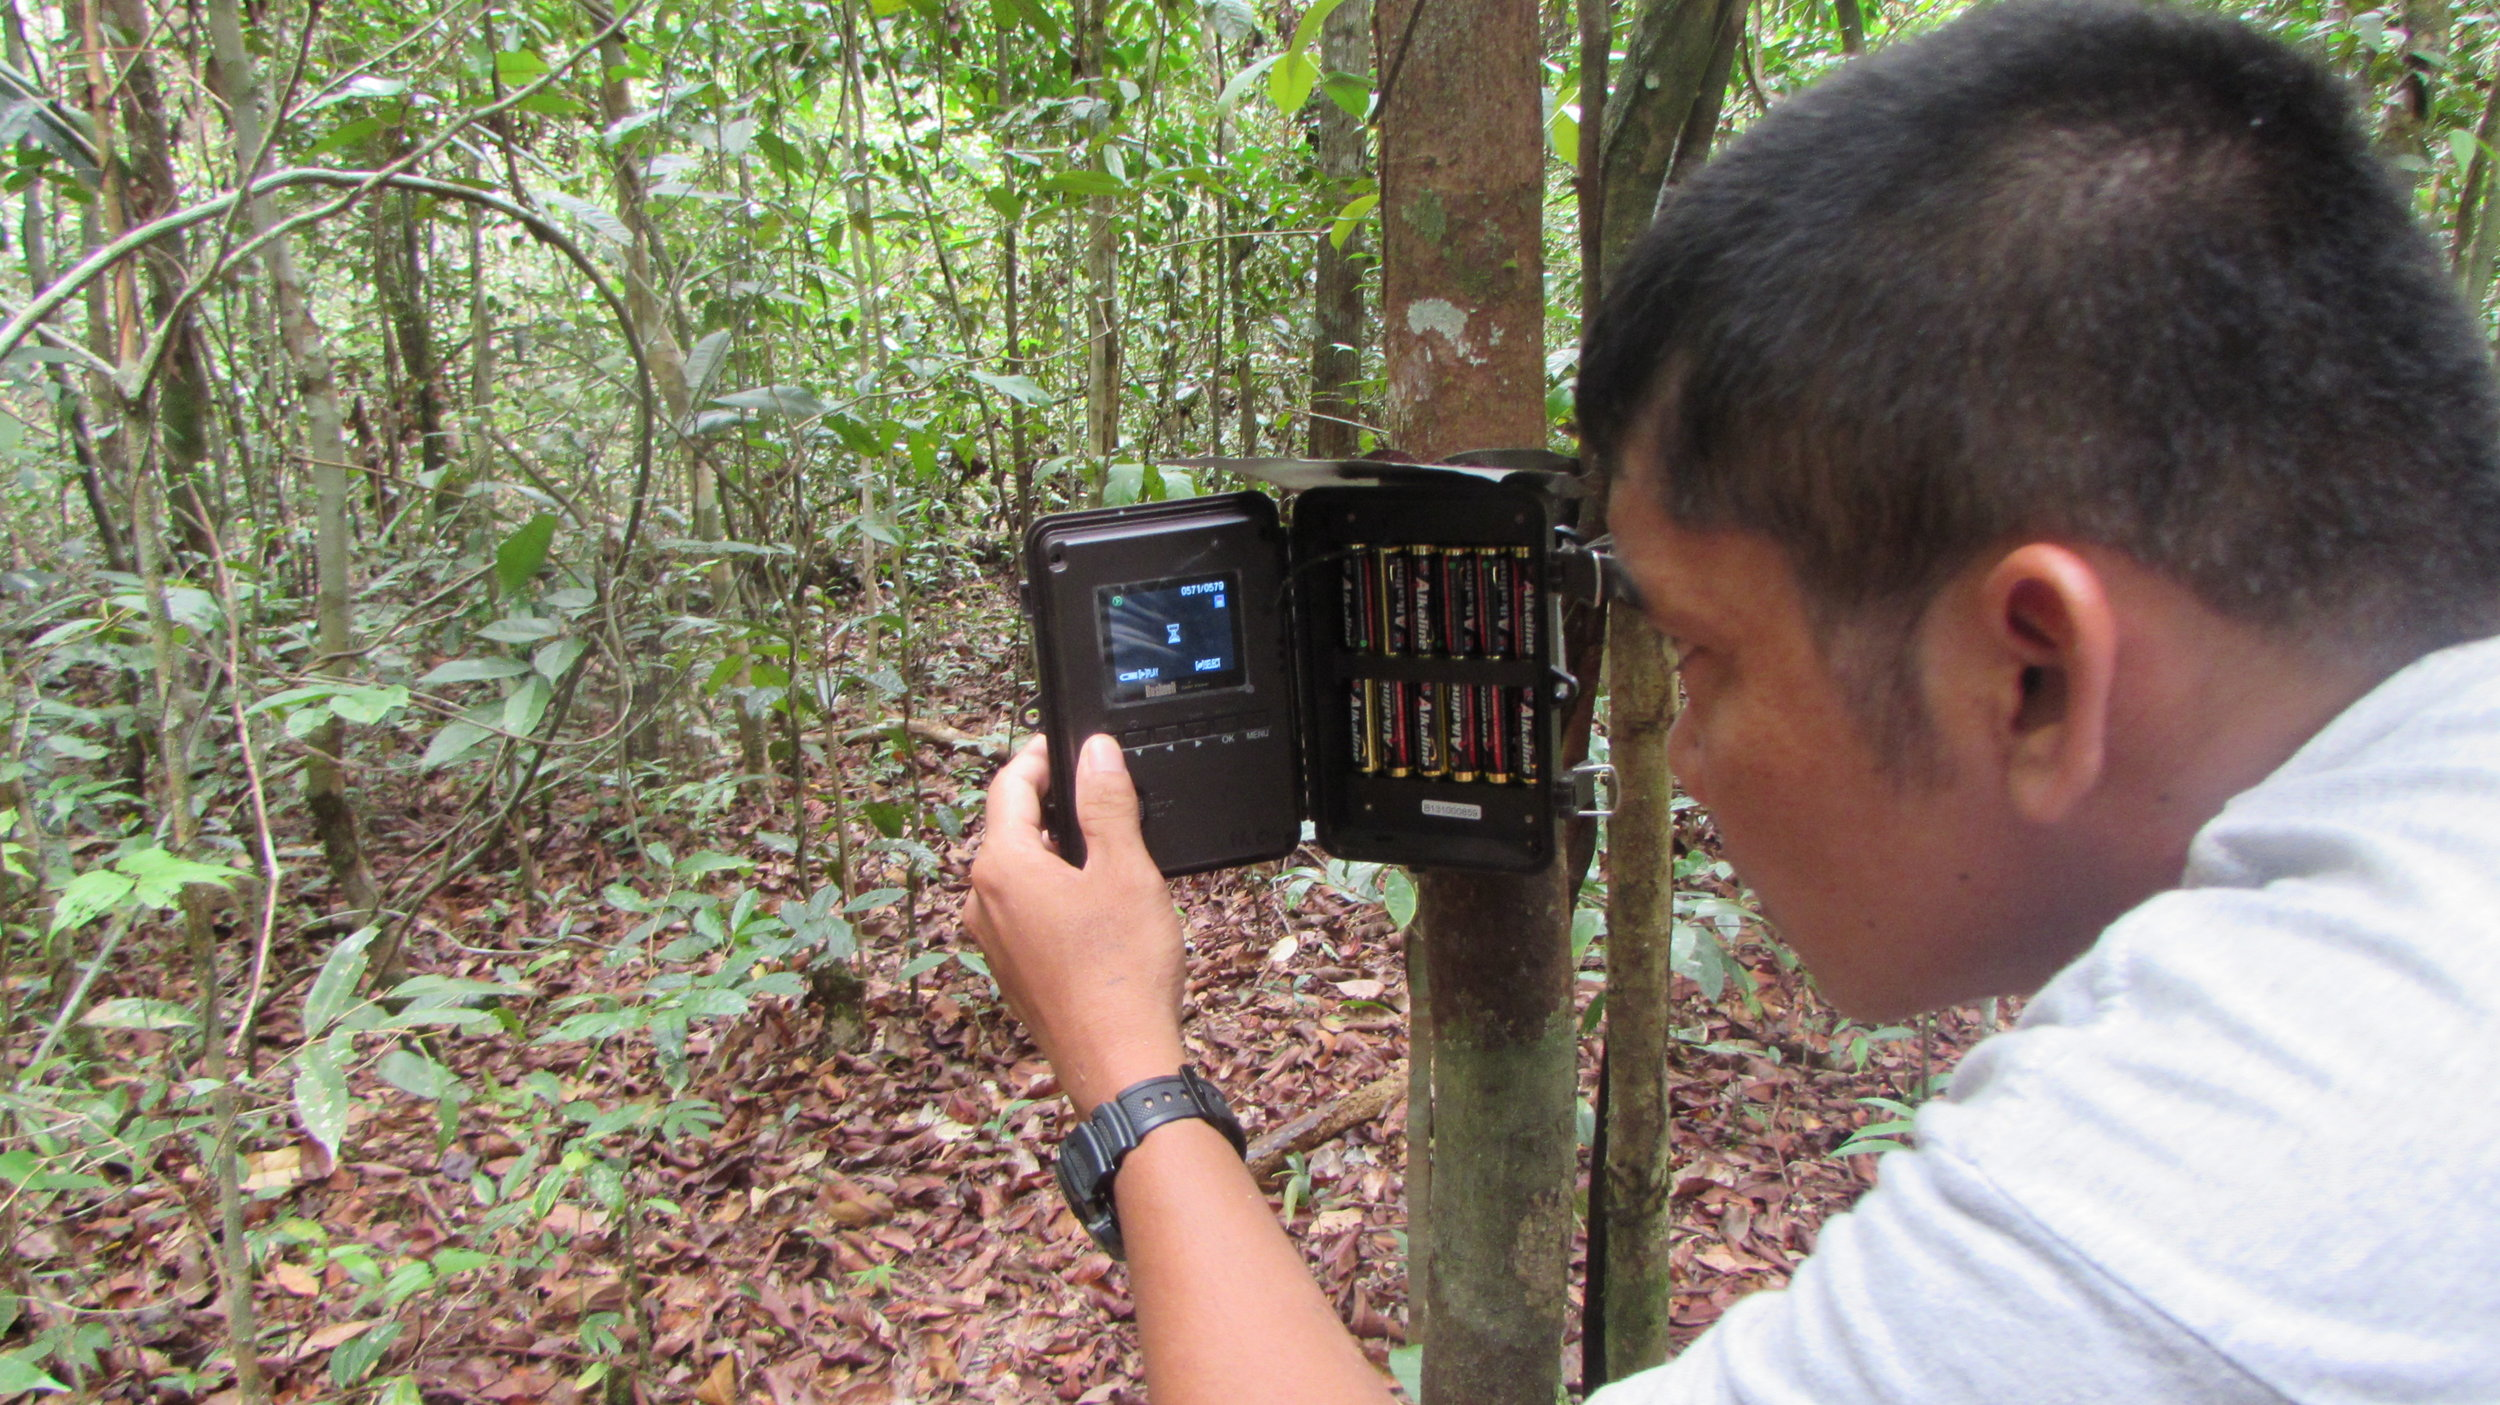 Pondok Ambung staff member checking the camera traps for new images